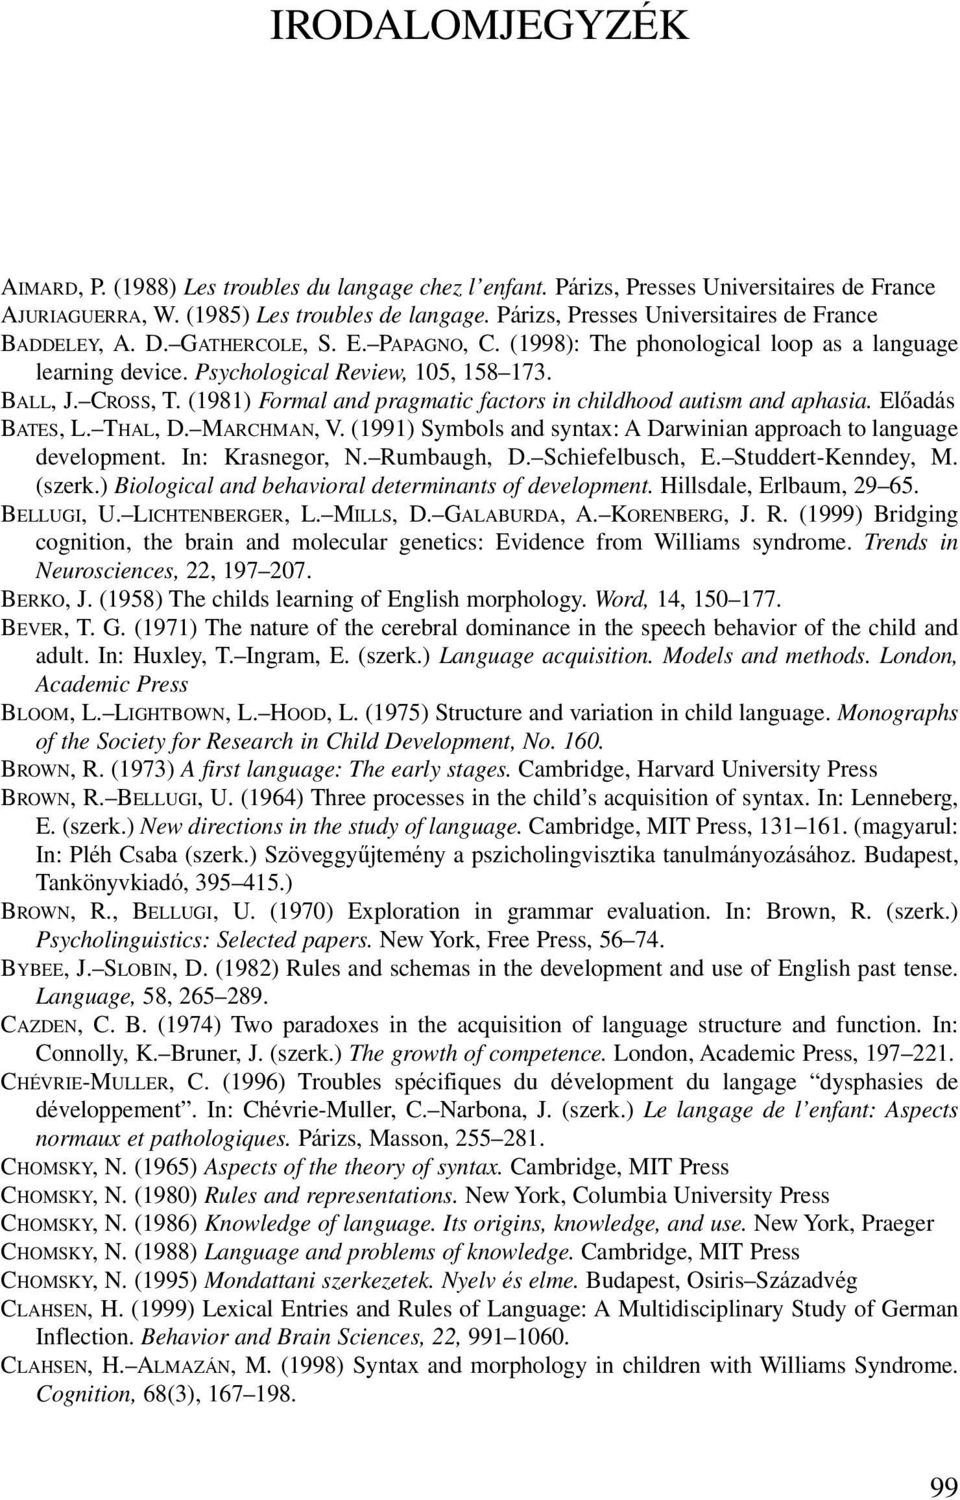 CROSS, T. (1981) Formal and pragmatic factors in childhood autism and aphasia. Elôadás BATES, L. THAL, D. MARCHMAN, V. (1991) Symbols and syntax: A Darwinian approach to language development.